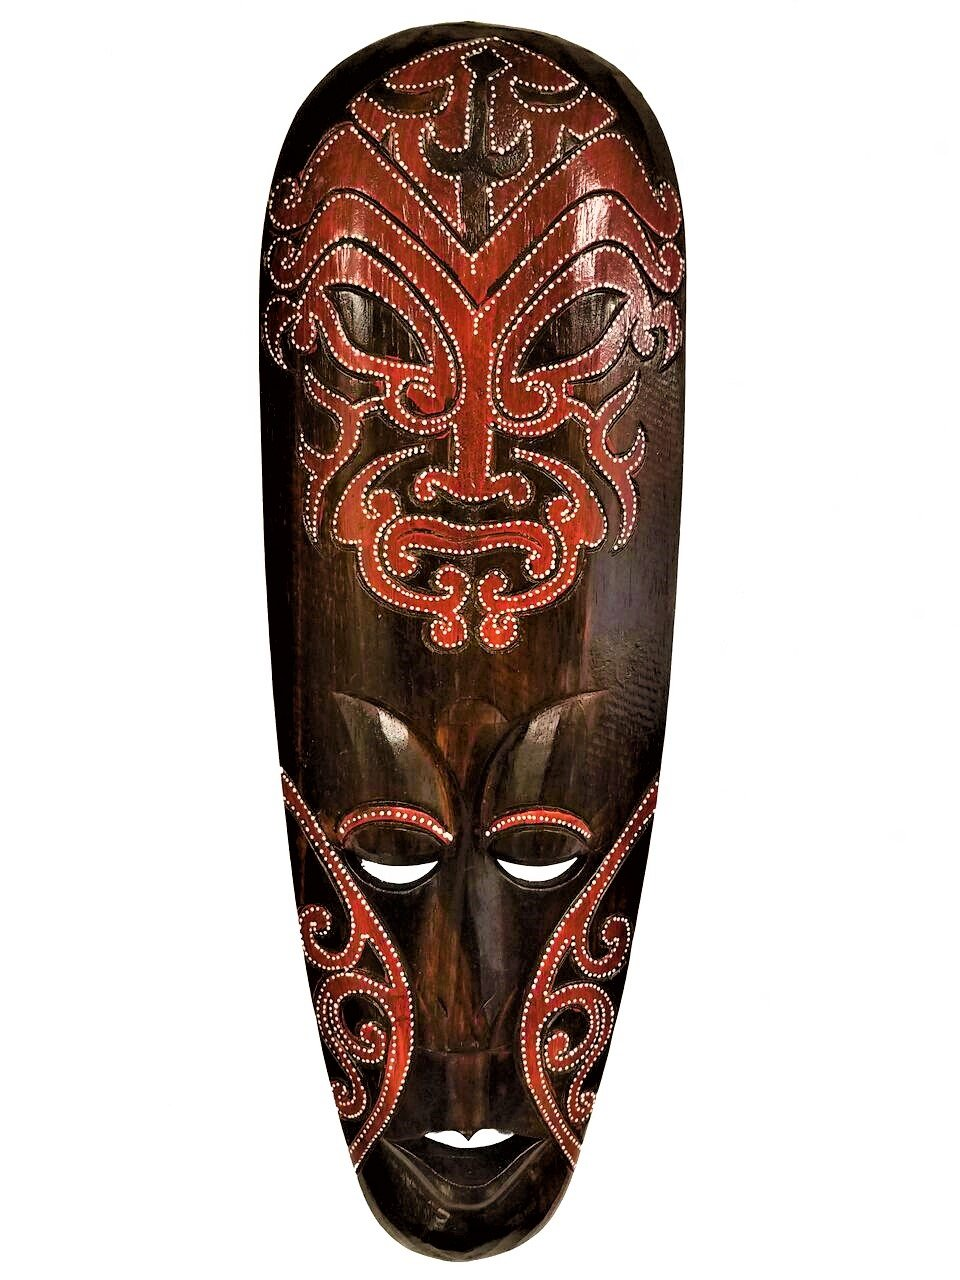 All Seas Imports Beautiful Vibrant Hand Chiseled Wood African Style Wall Decor Mask!